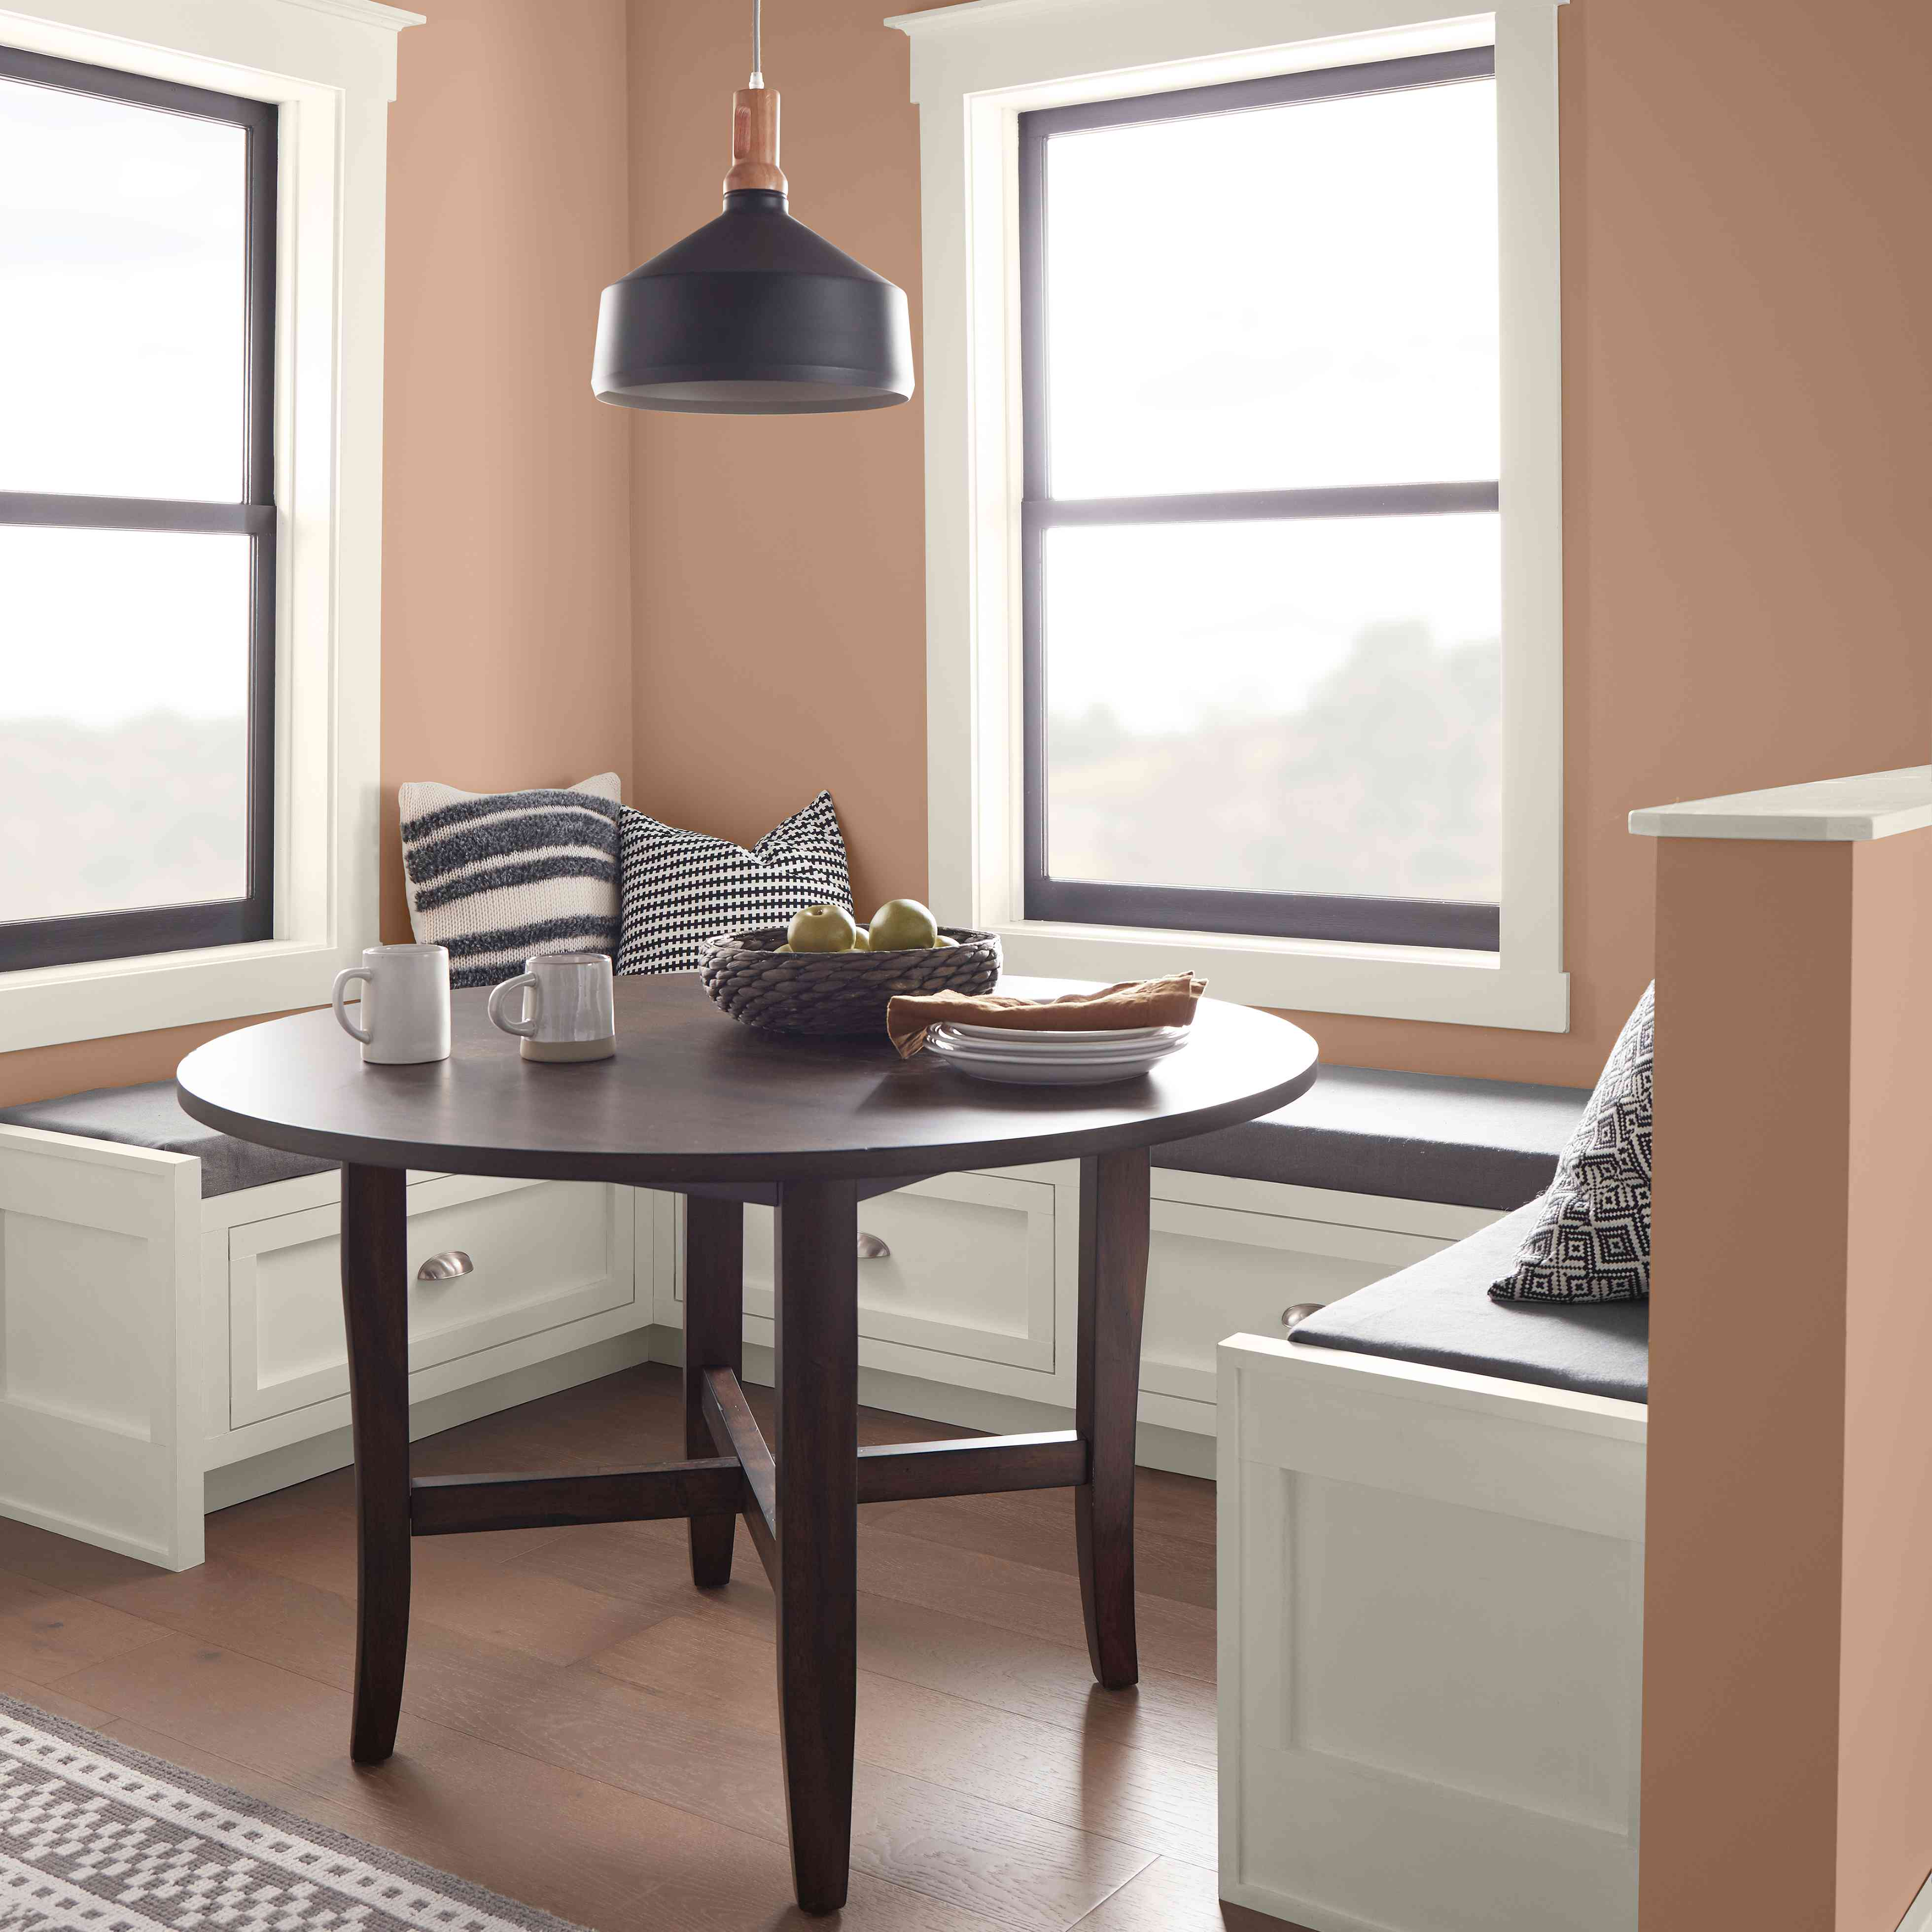 breakfast nook using behr's color of the year, canyon dusk